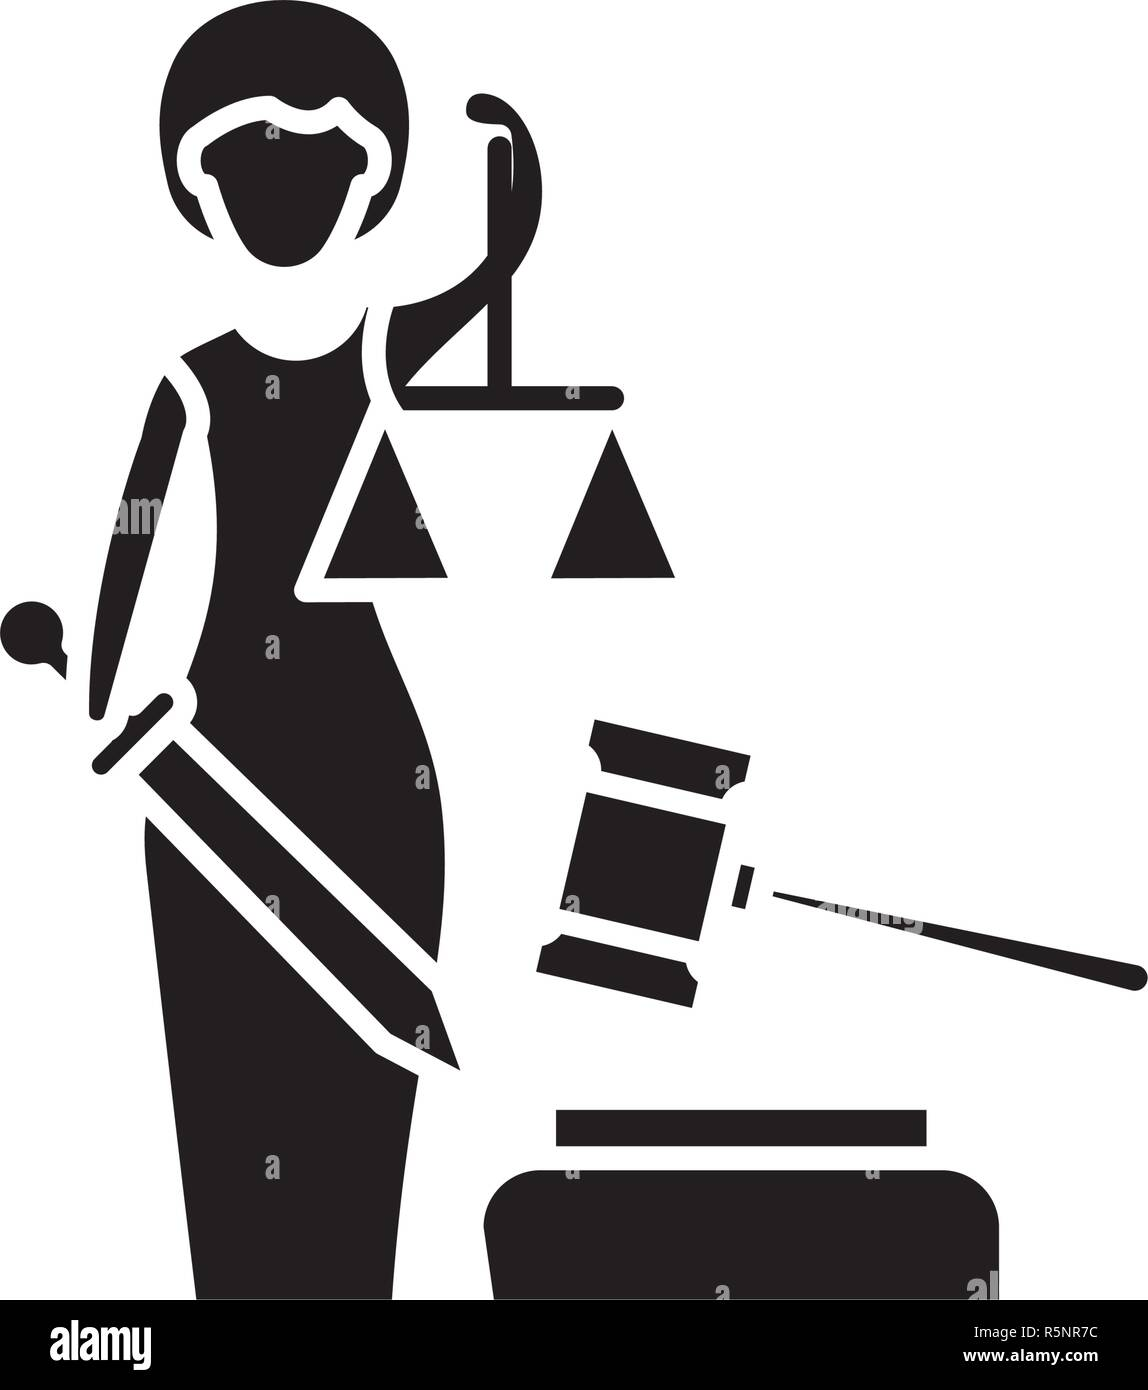 Justice black icon, vector sign on isolated background. Justice concept symbol, illustration  - Stock Image